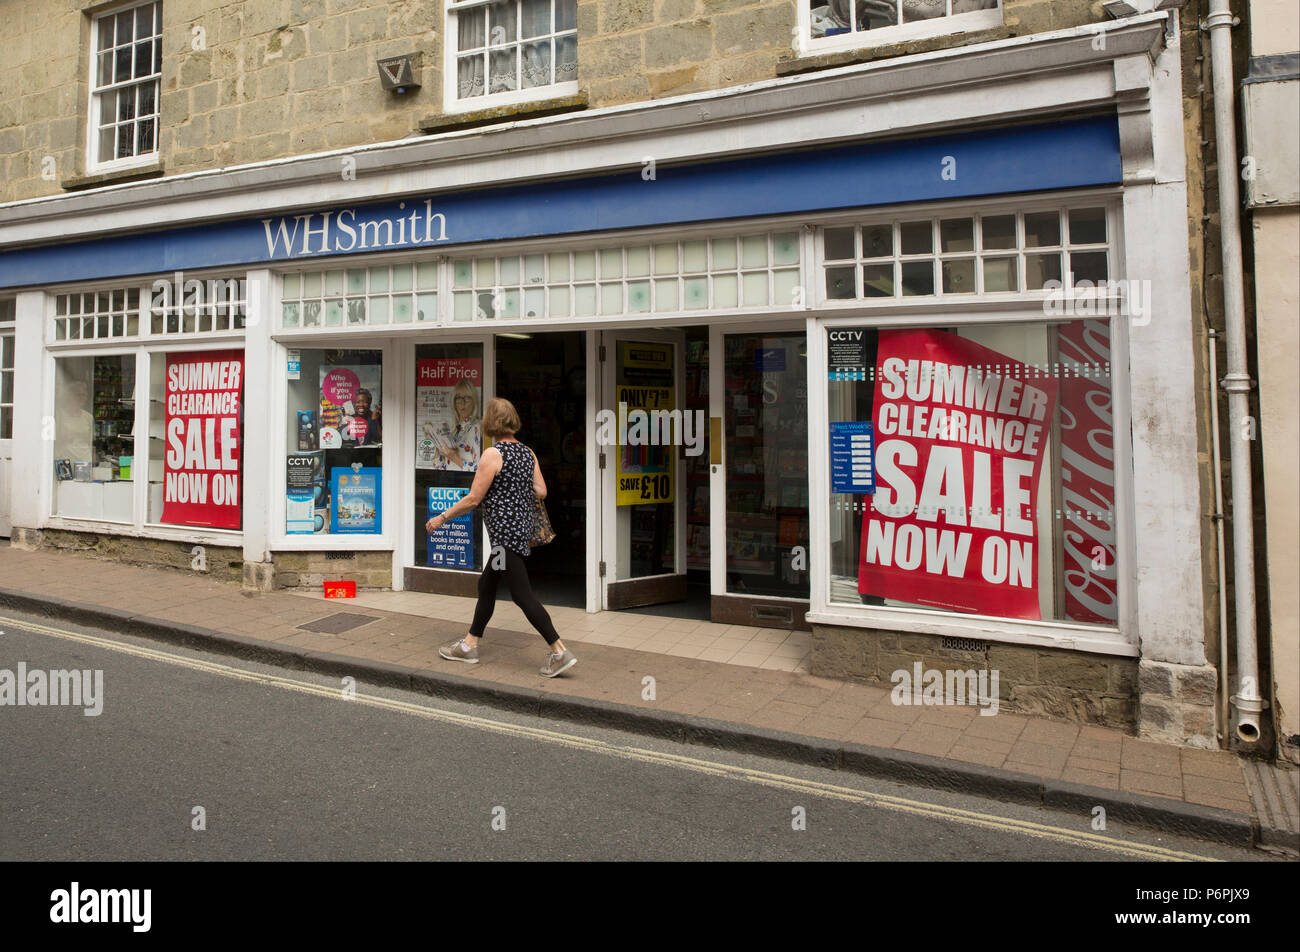 A WH Smith store in Shaftesbury Dorset advertising a summer clearance sale. North Dorset England Uk Gb - Stock Image